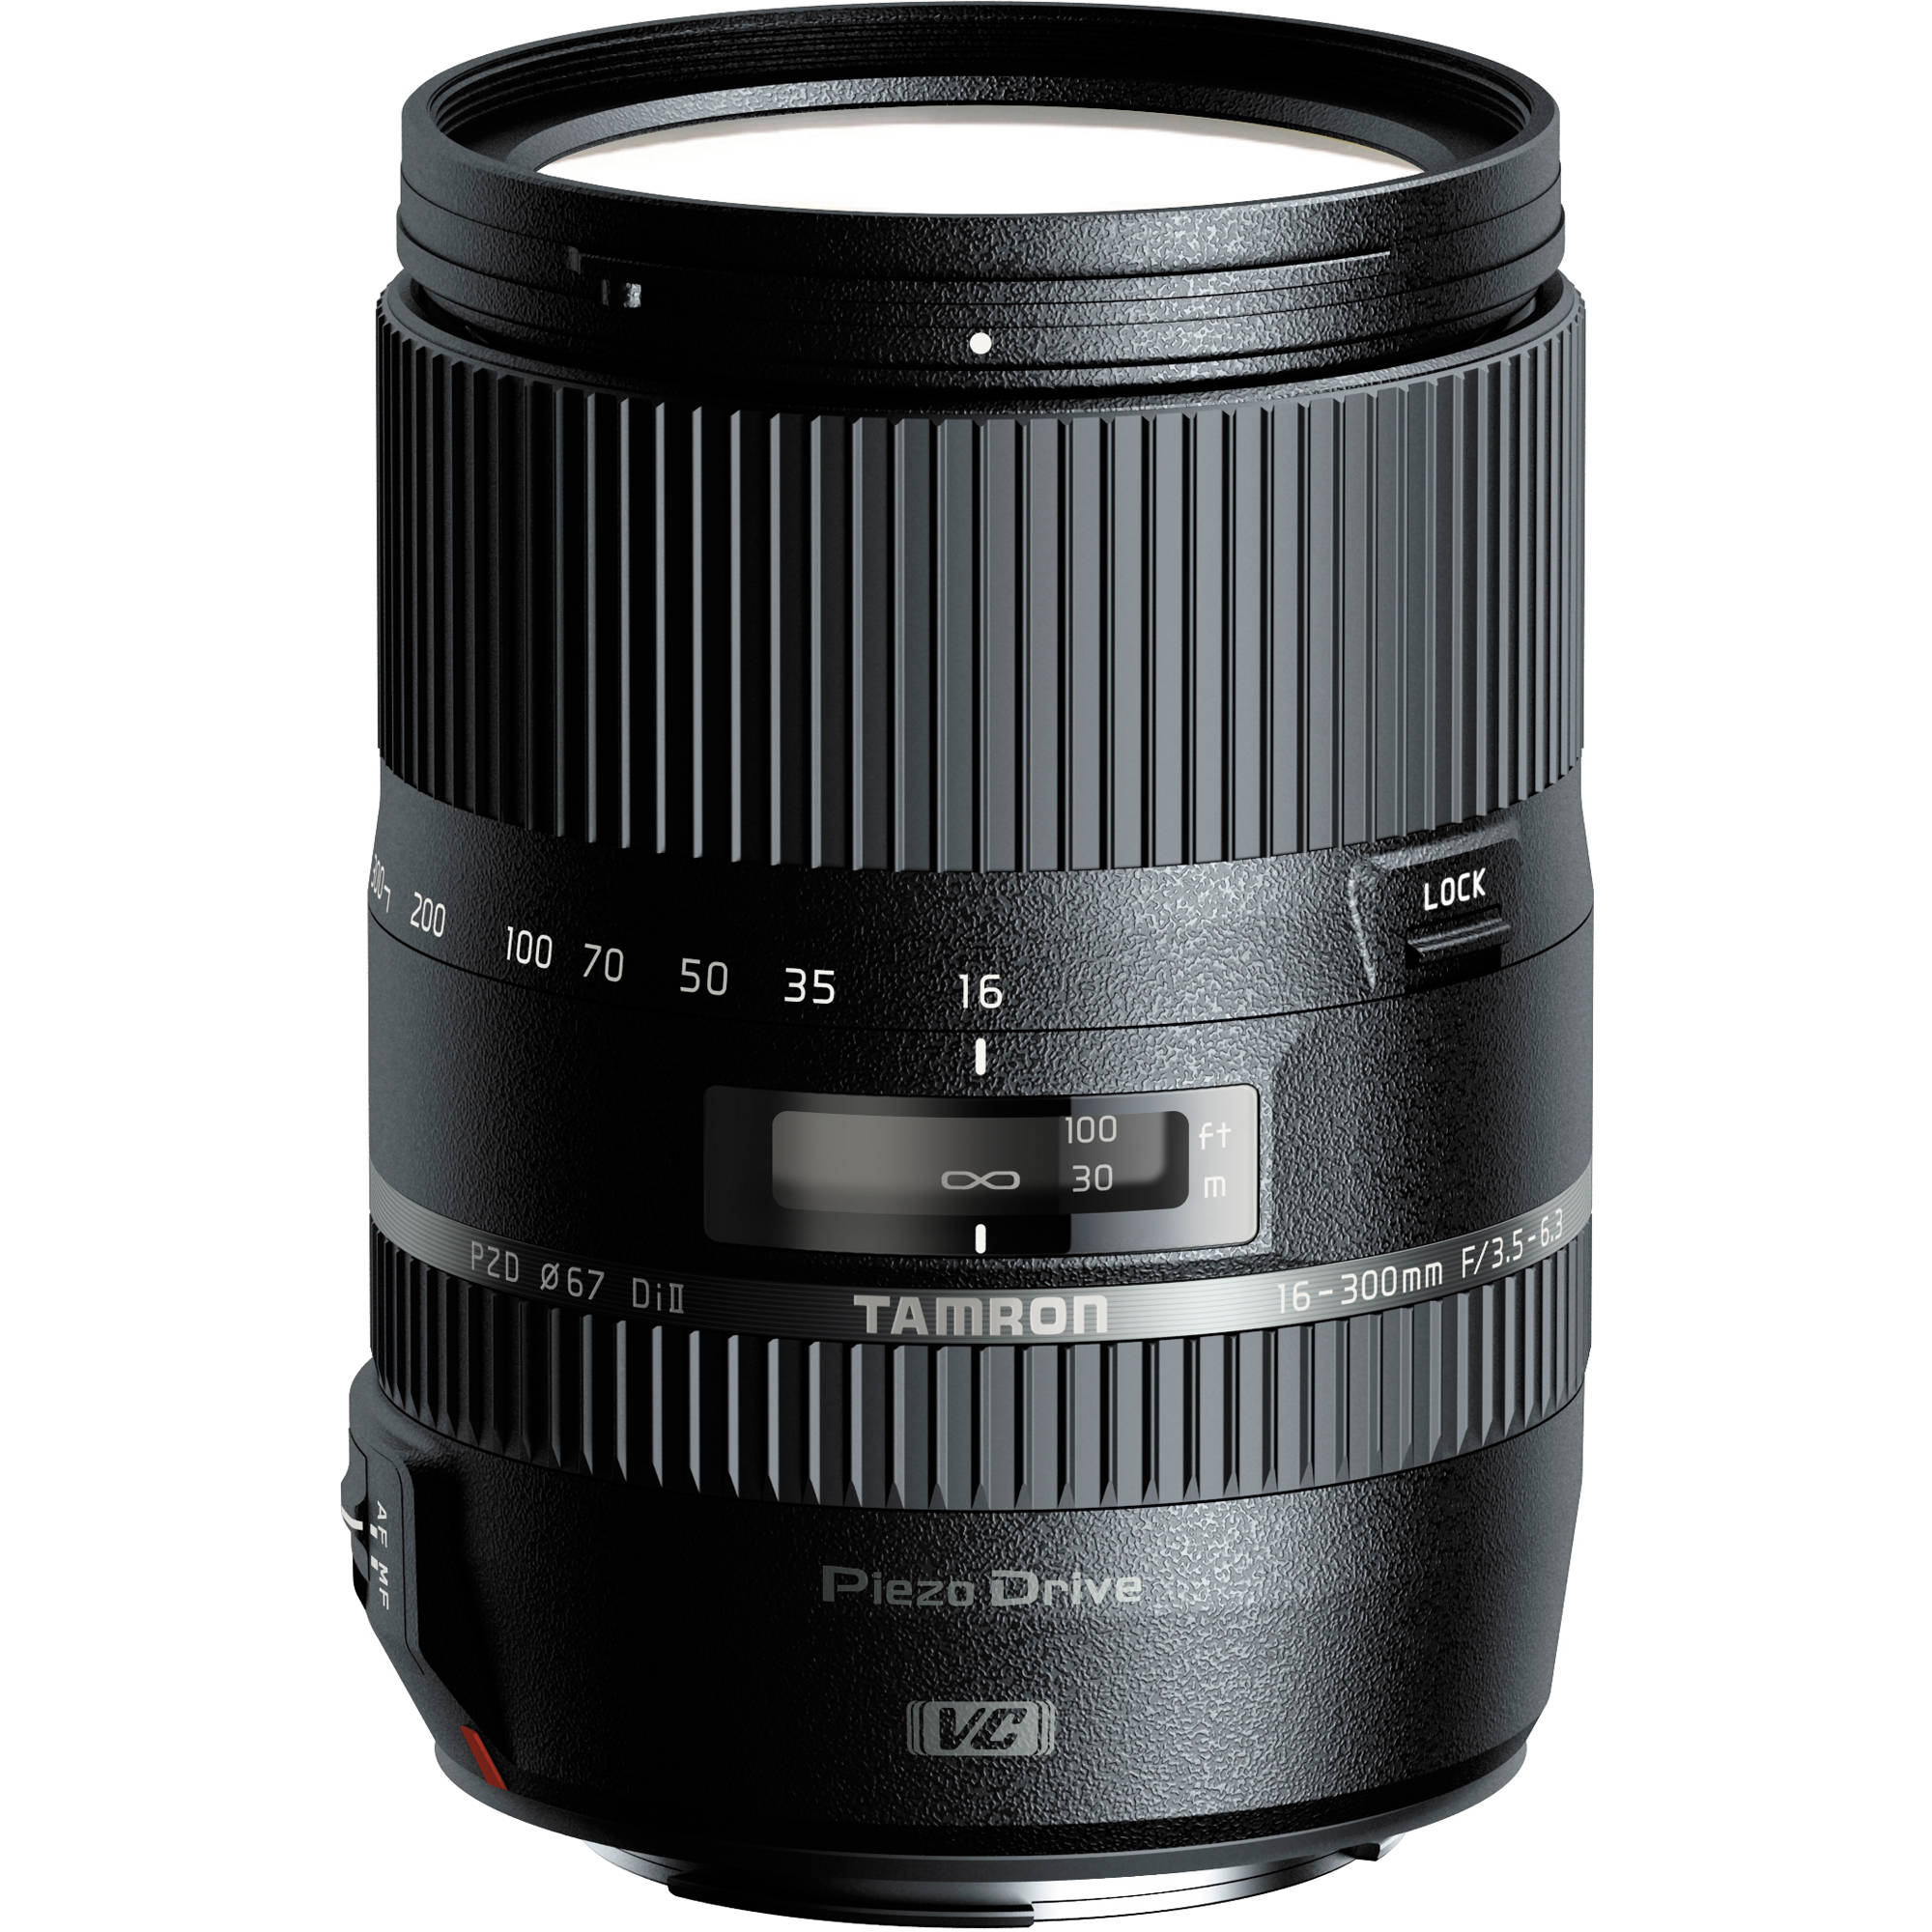 Image of Tamron 16-300mm f/3.5-6.3 Di II VC PZD Macro Lens For Canon Mount